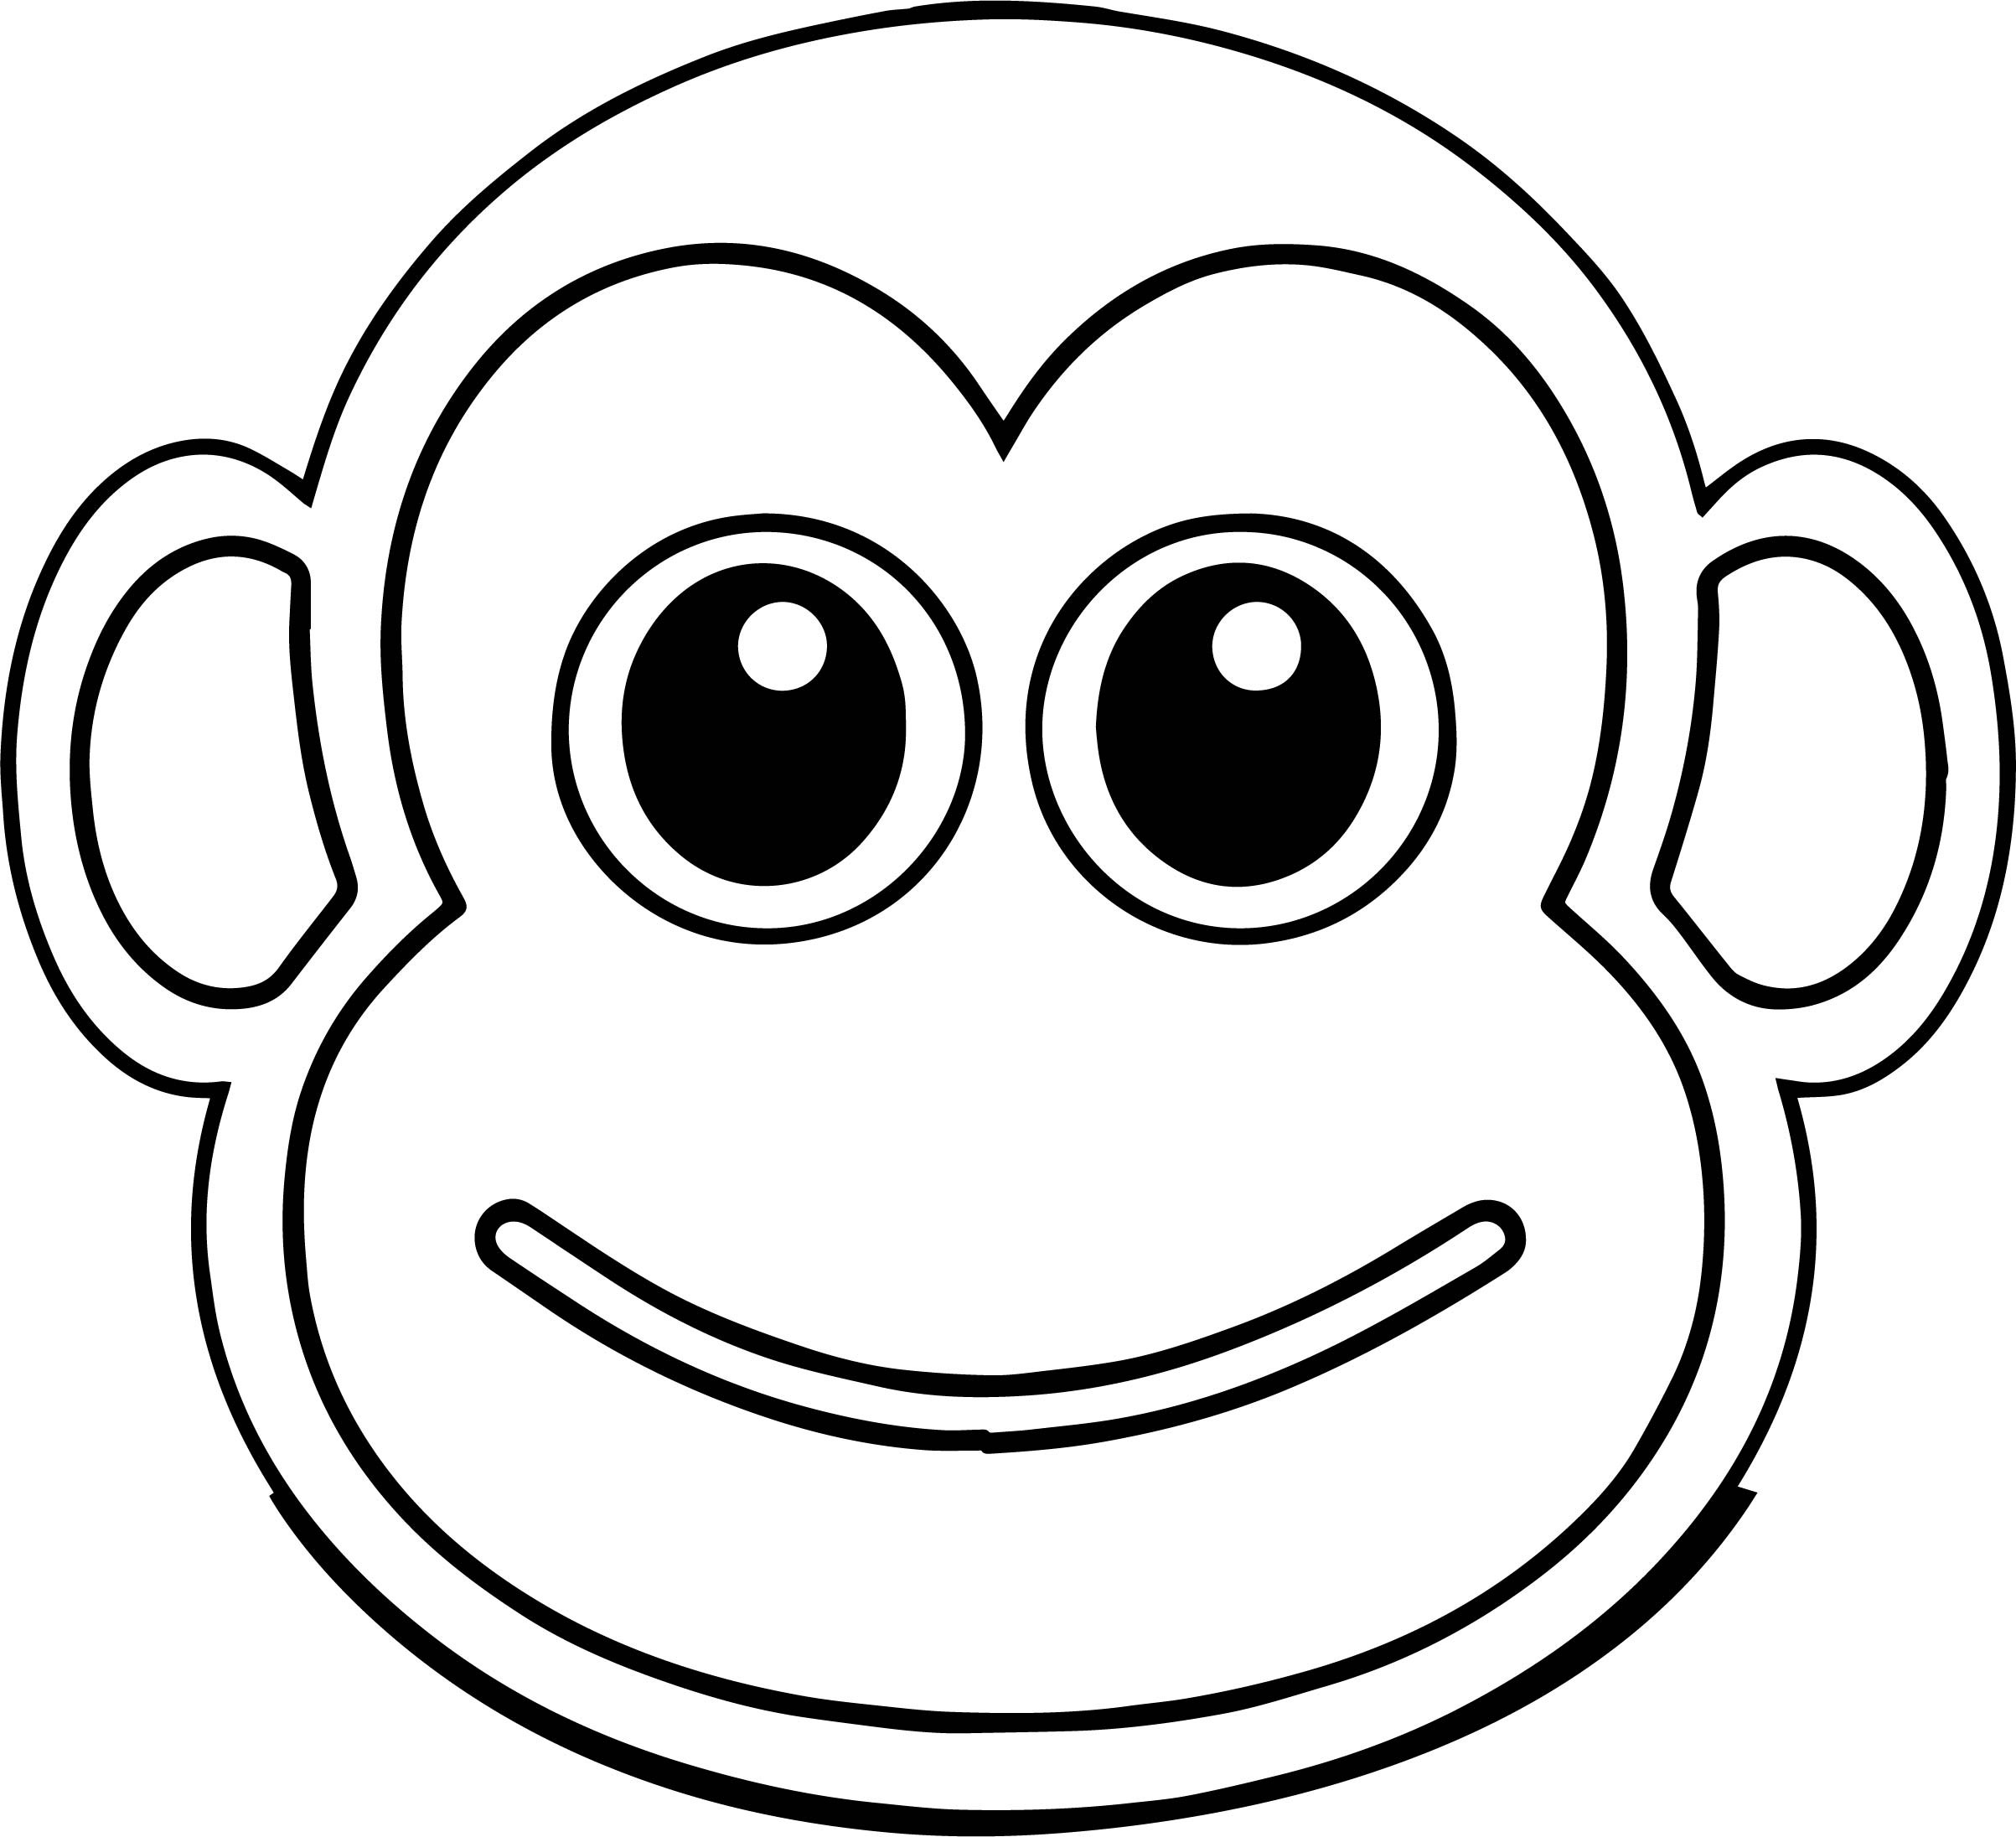 2406x2192 Top Coloring Pages Cartoon Monkeys Cool Ideas Monkey Face